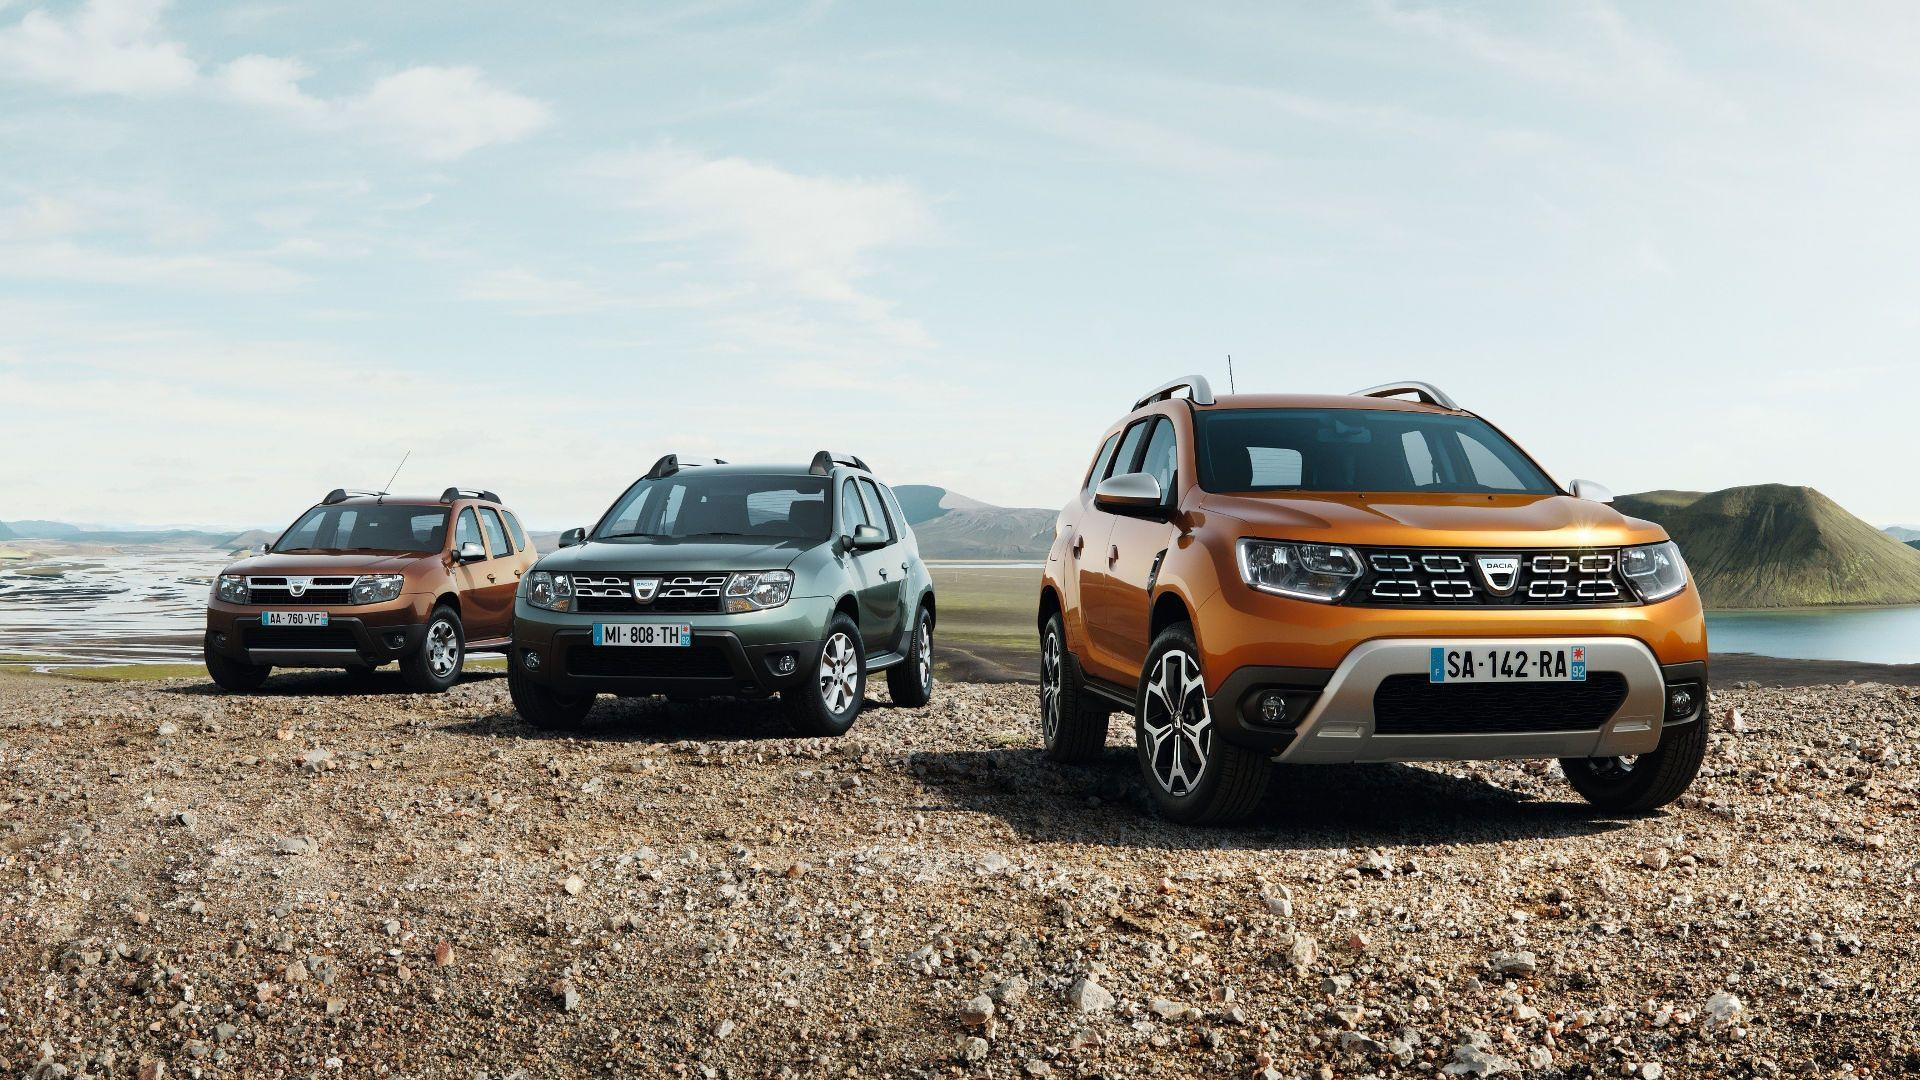 2018 dacia duster frankfurt debut for updated suv image for Interieur nouveau duster 2018